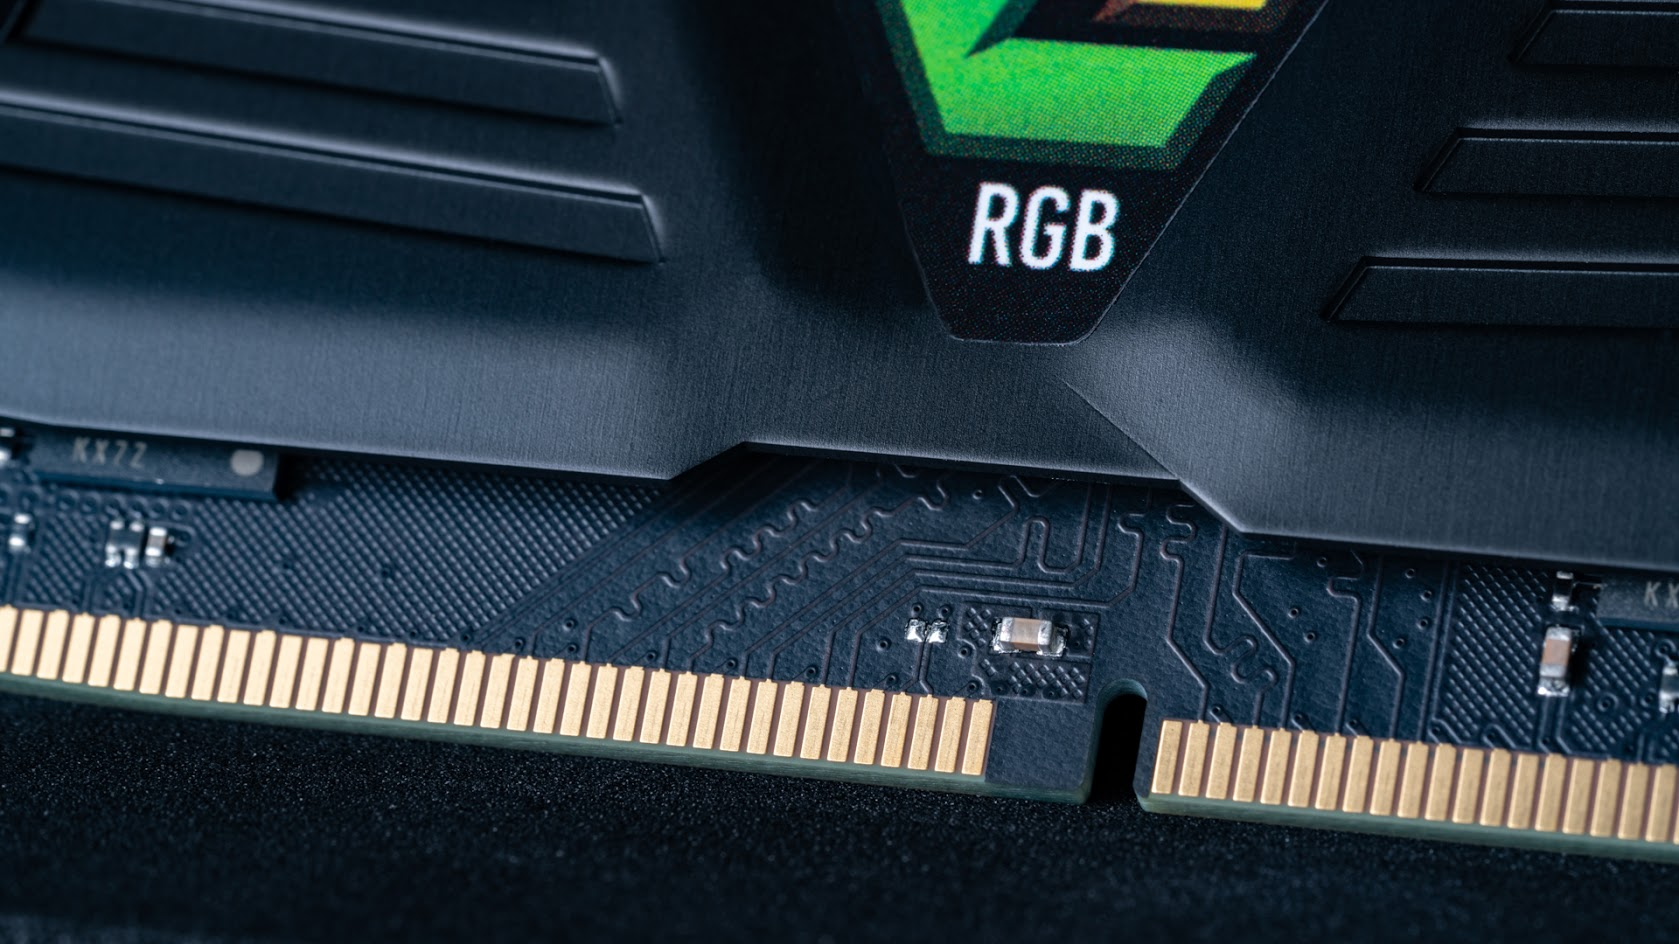 Stupendous What Type Of Ram Is Best For Pc Gaming Ddr Types Explained Alphanode Cool Chair Designs And Ideas Alphanodeonline